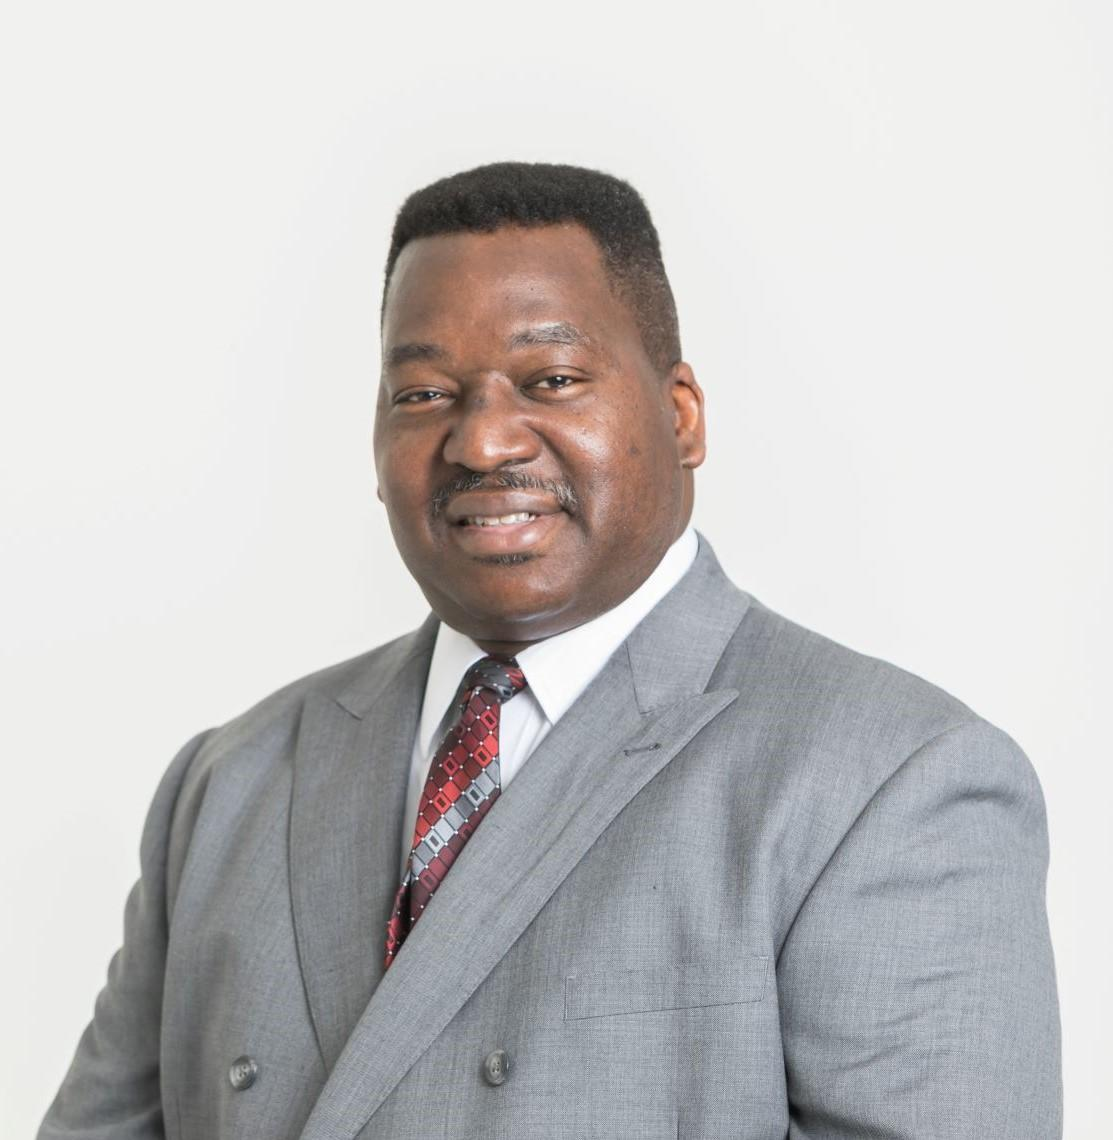 SHERWOOD L. BROWN Financial Professional & Insurance Agent